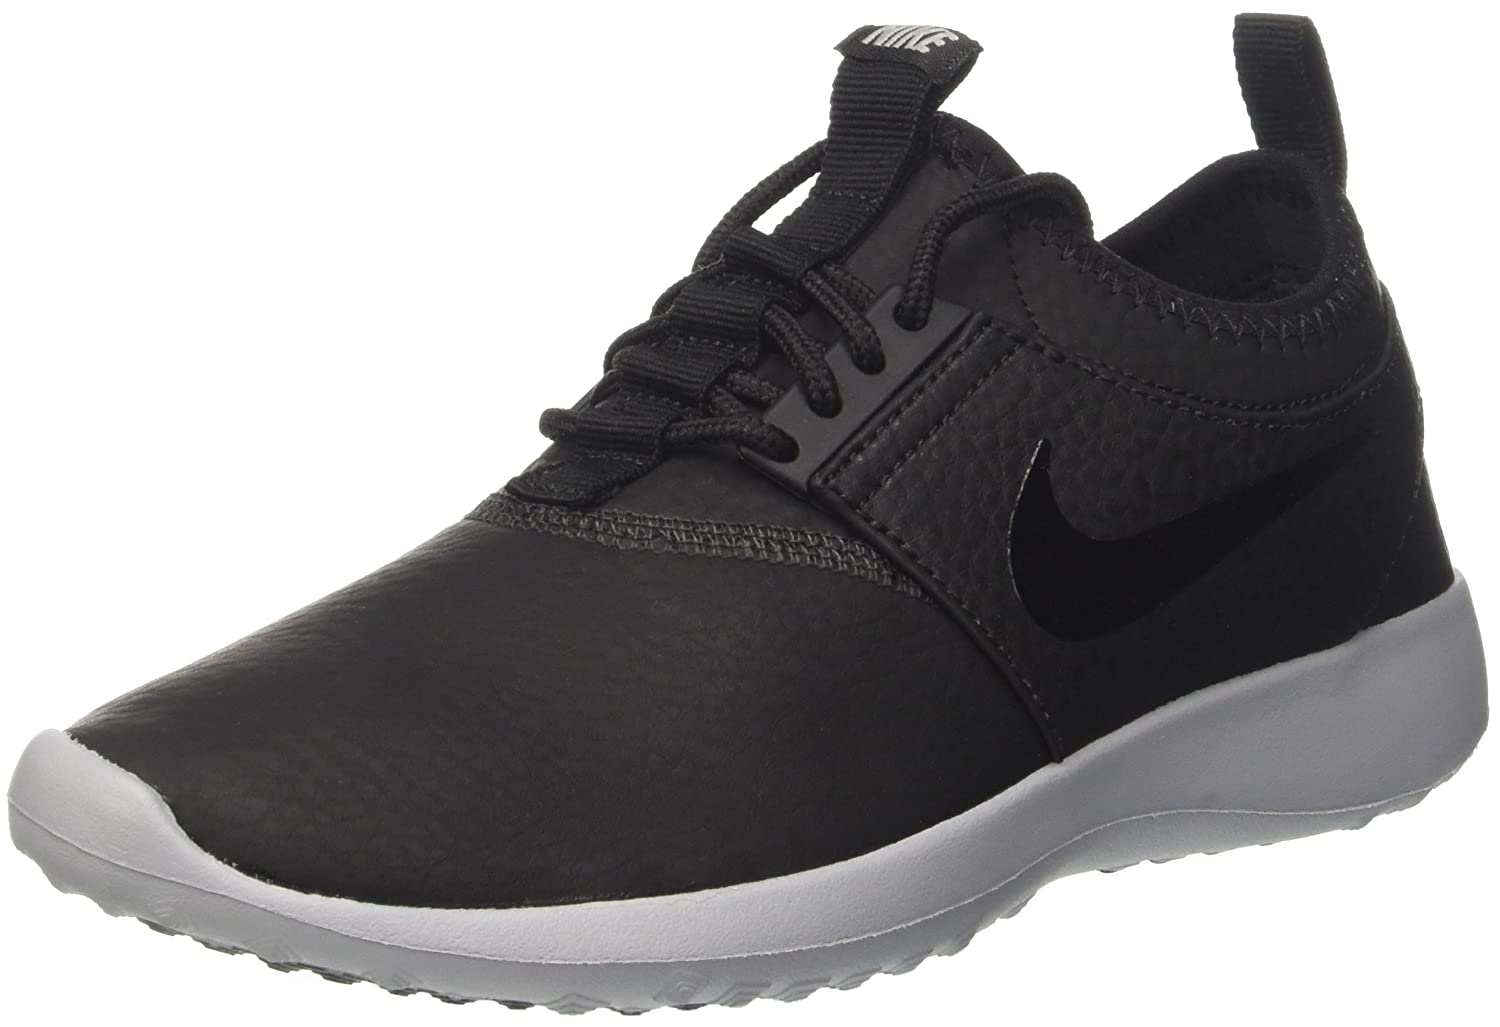 NIKE Women's Juvenate Premium B01MF5FZ9V 7.5 B(M) US|Black/Black-wolf Grey